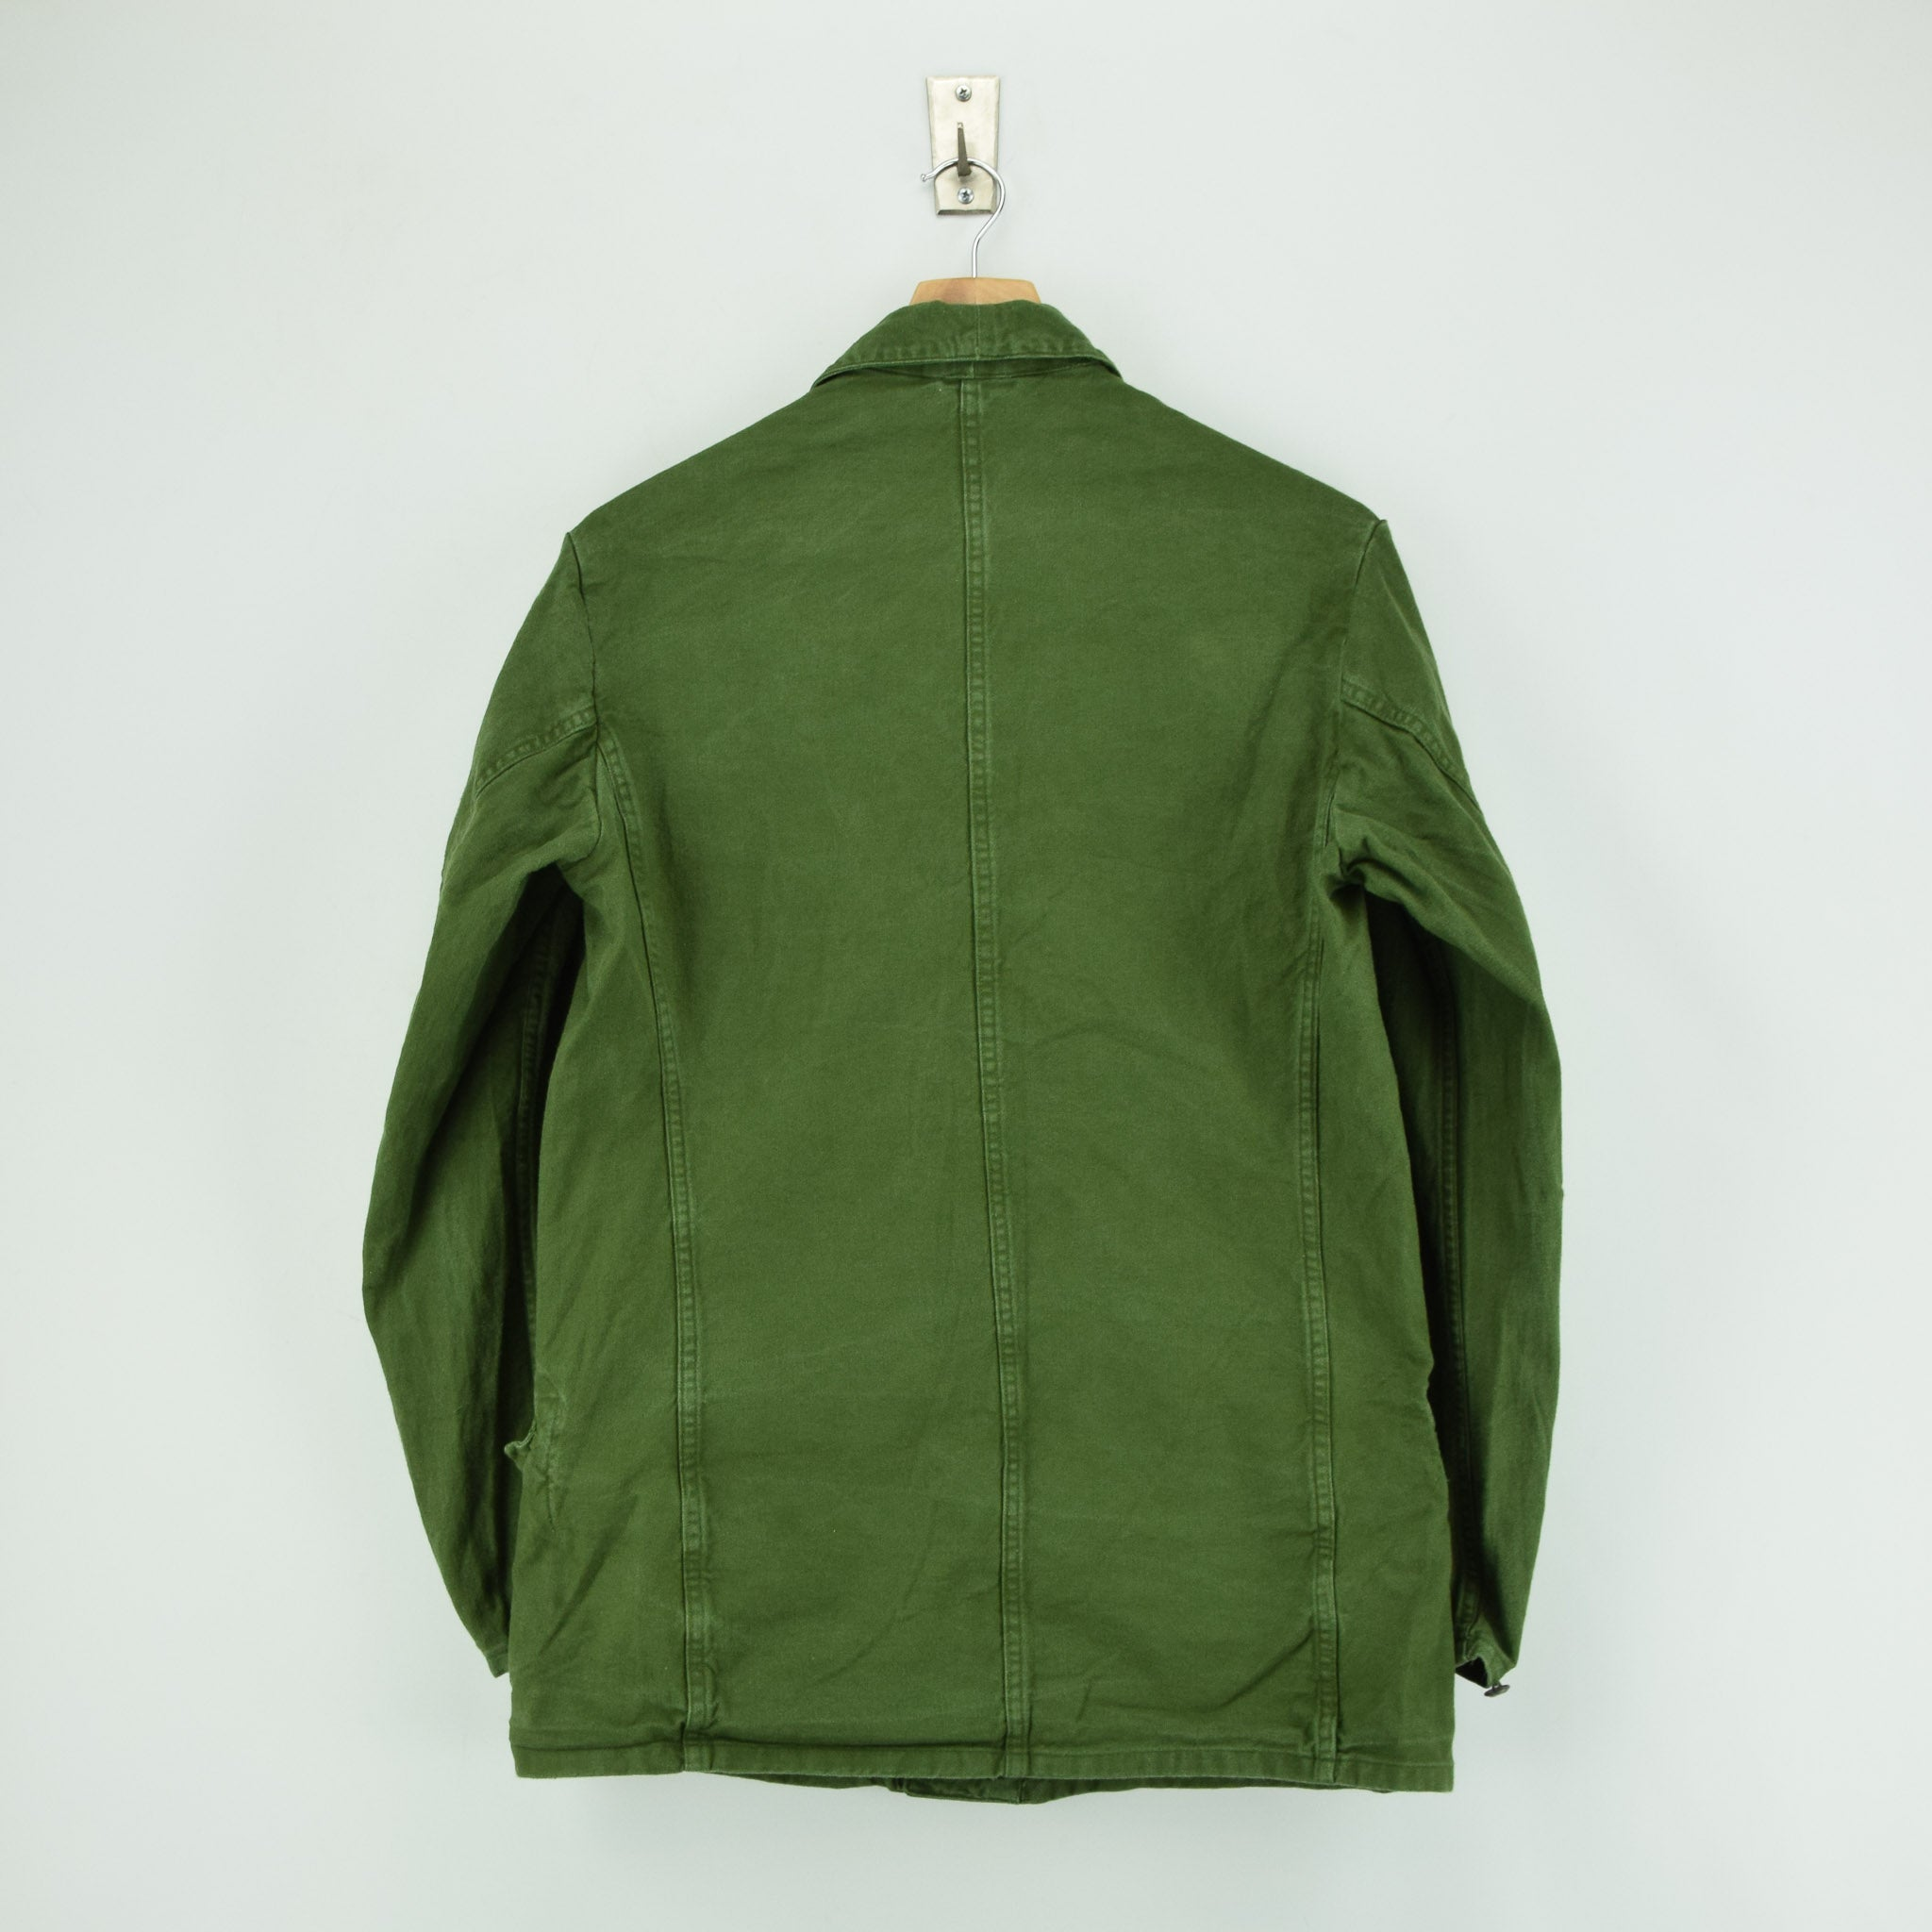 Vintage 60s Swedish Military Field Jacket Worker Style Distressed Green S back